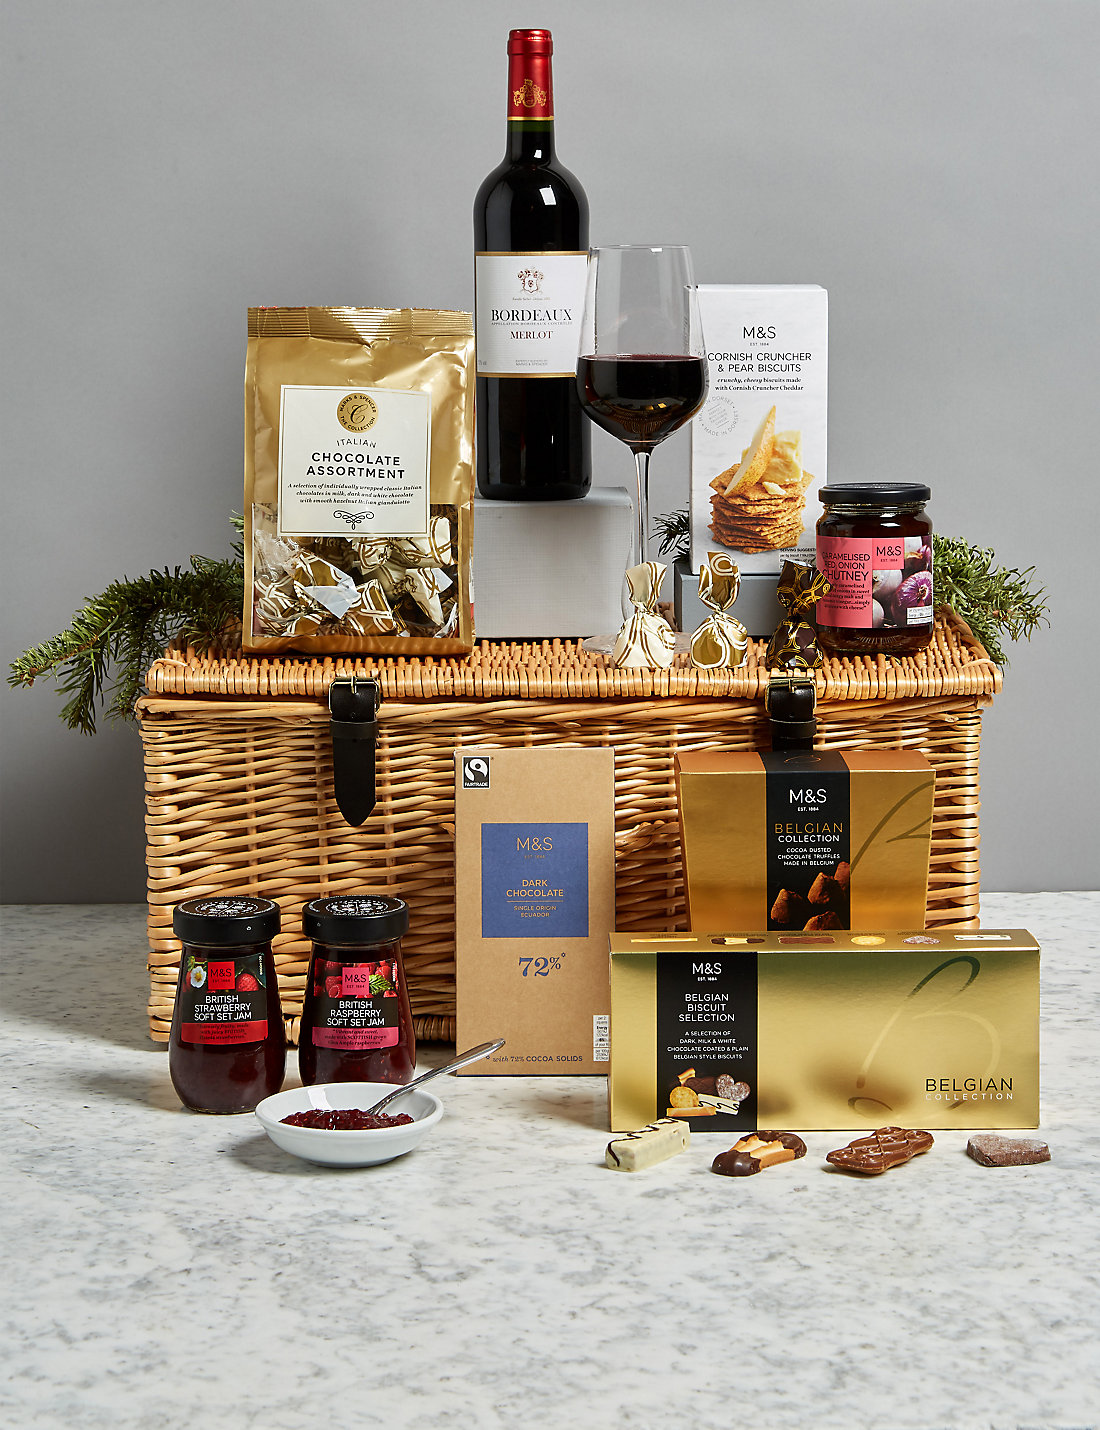 M And S Bathroom Accessories Wine Gifts Wine Gift Sets Baskets Hampers For Him Her Ms